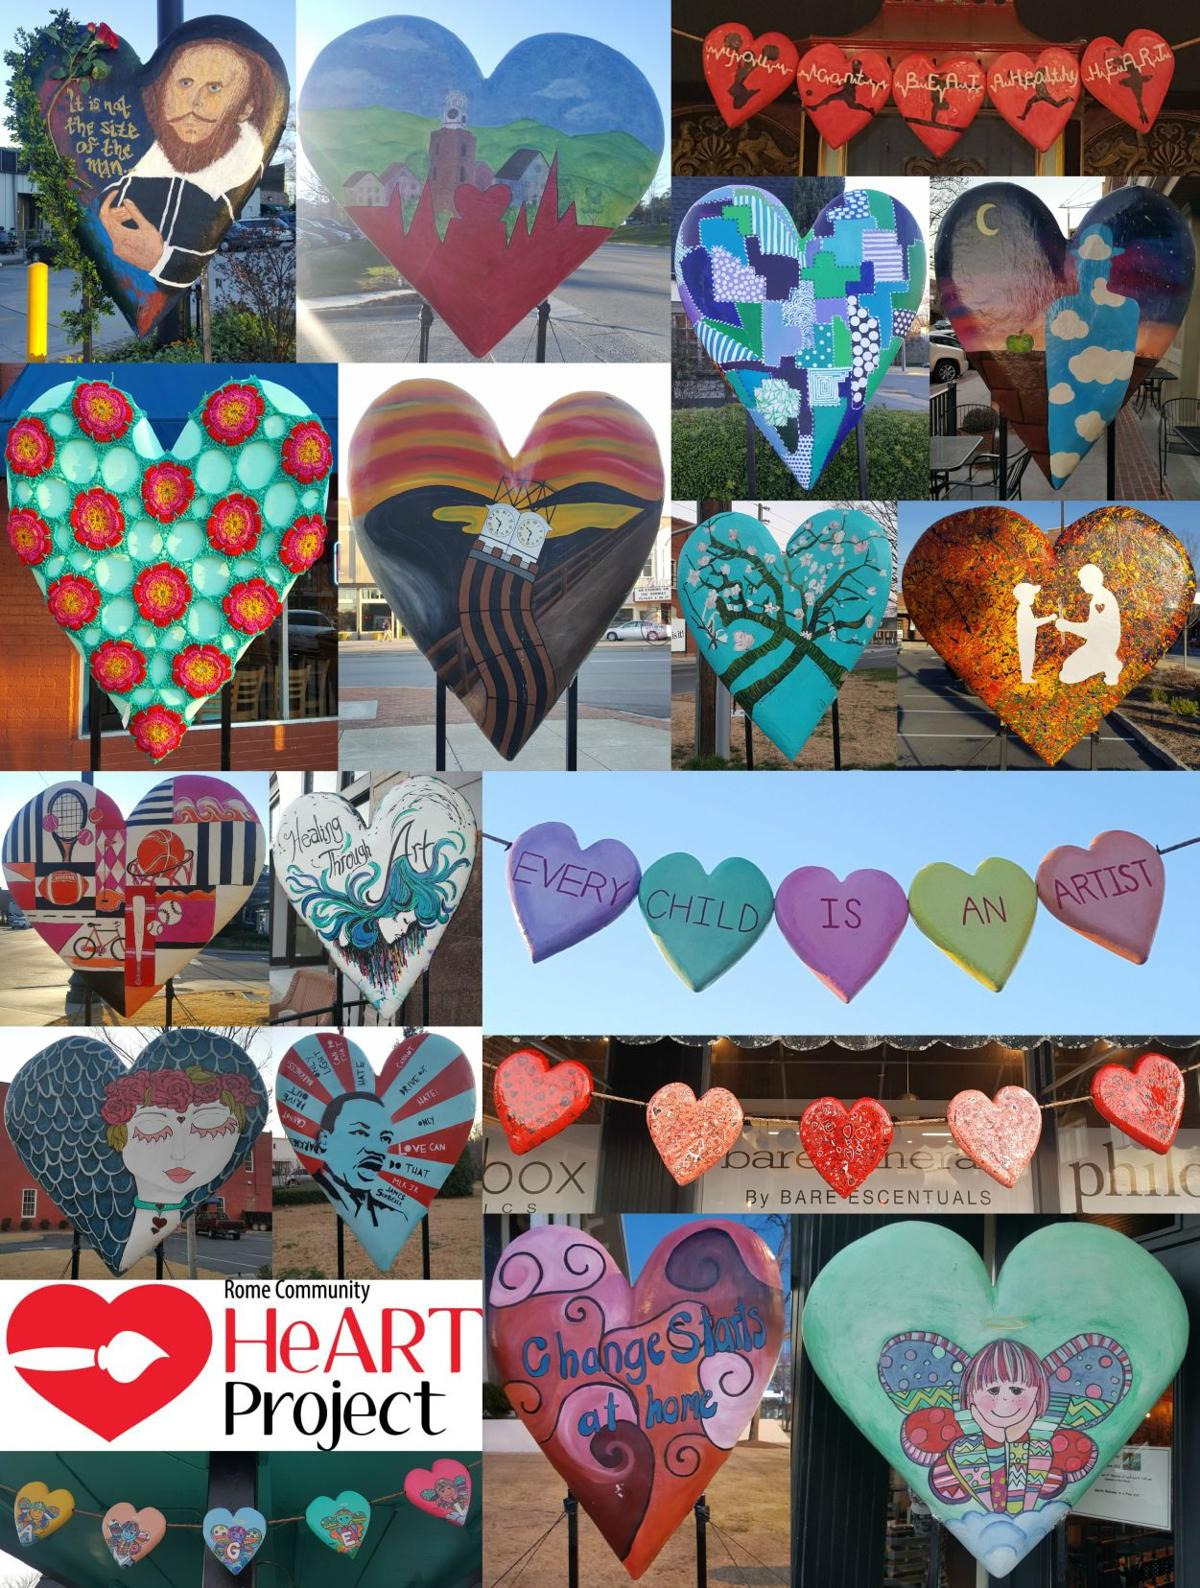 Rome Community HeART Project open for submissions